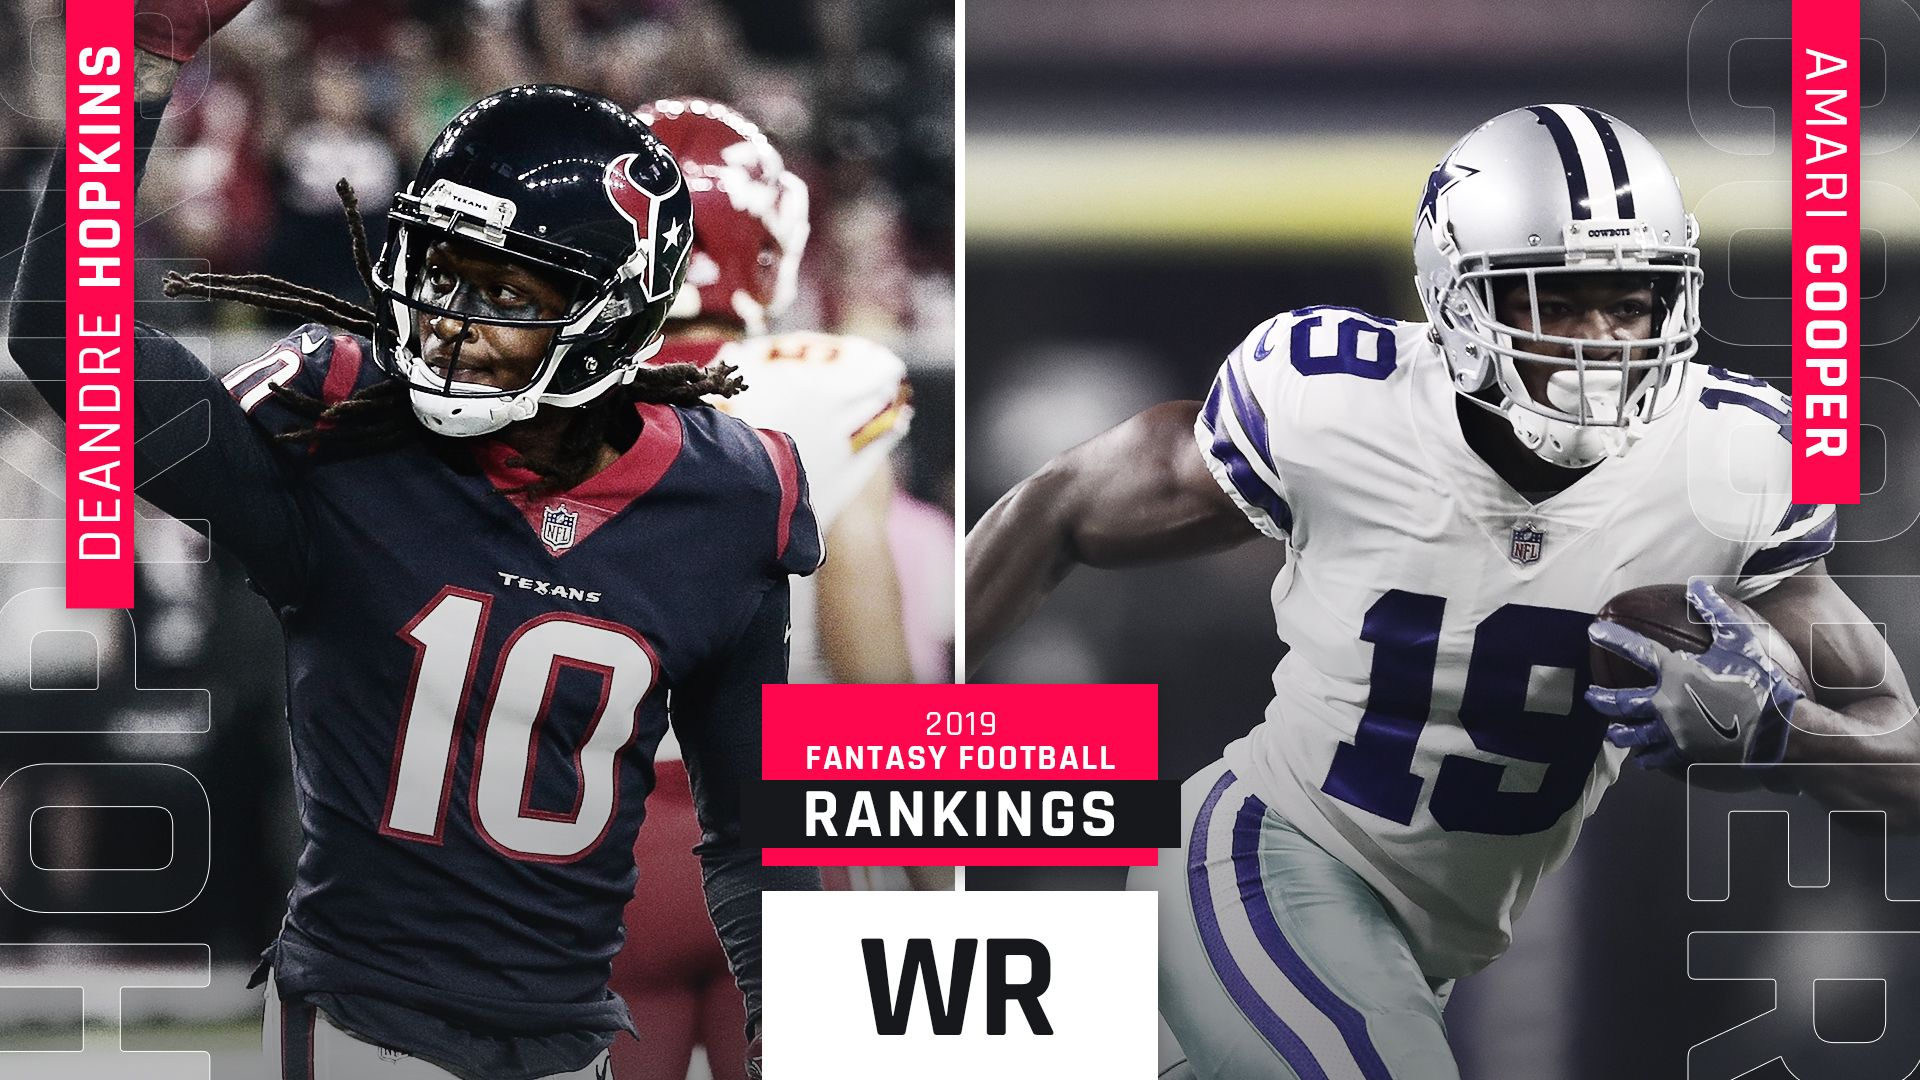 2019 Fantasy Football WR Rankings Sporting News